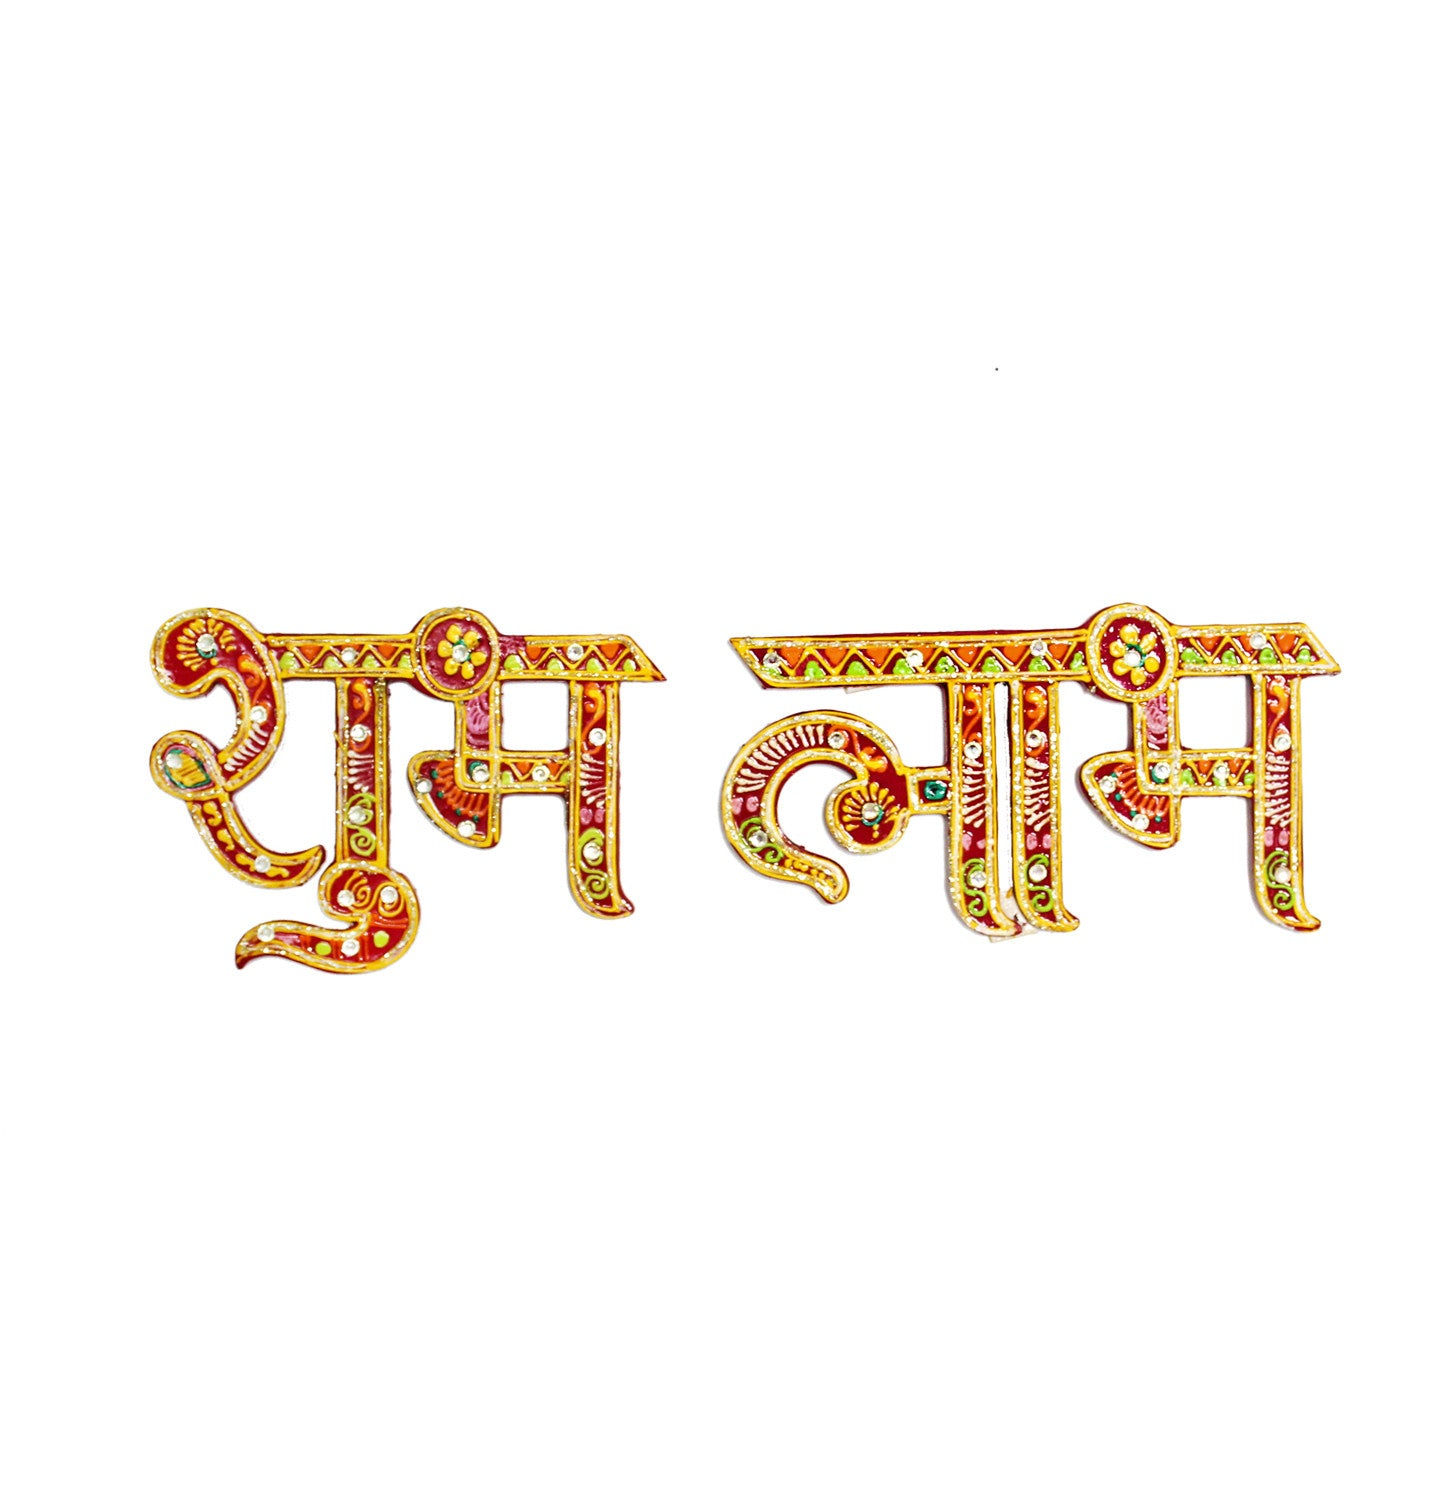 Shubh labh stickers online diwali special stickers devotionalstore